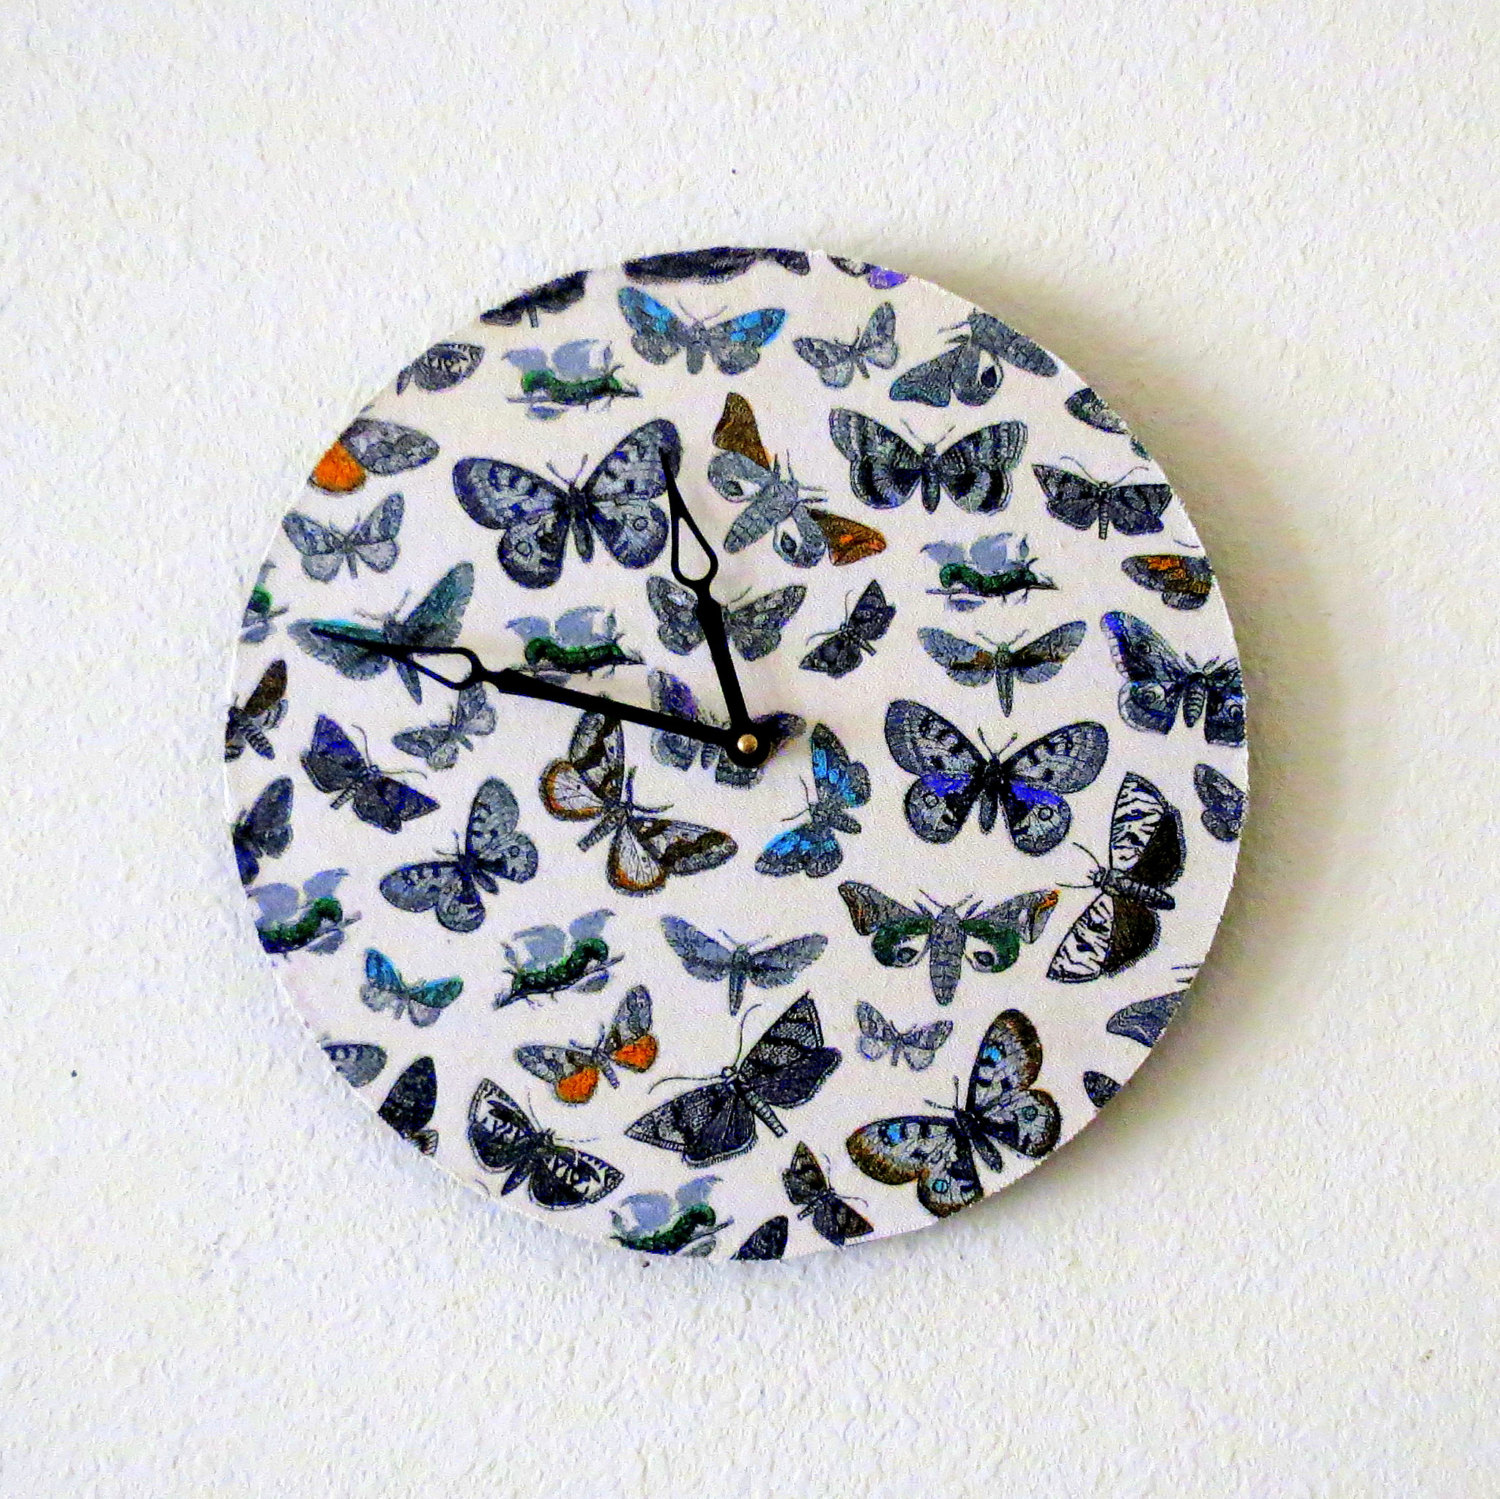 Time seems to flutter by. Shannybeebo -Etsy